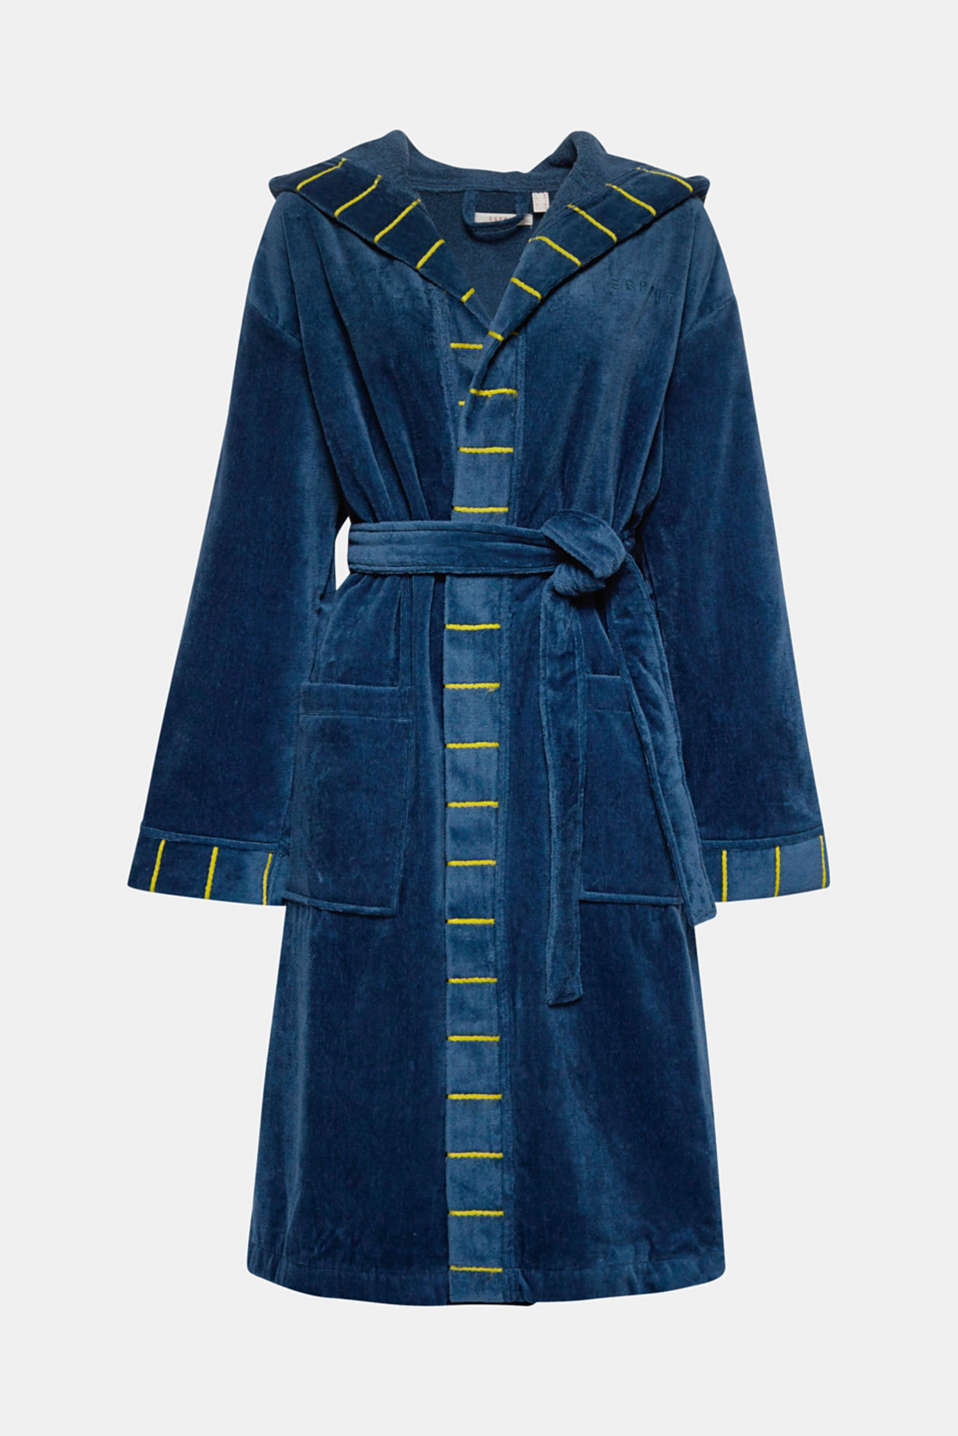 Terrycloth bathrobe in 100% cotton, JEANS/MUSTARD, detail image number 0